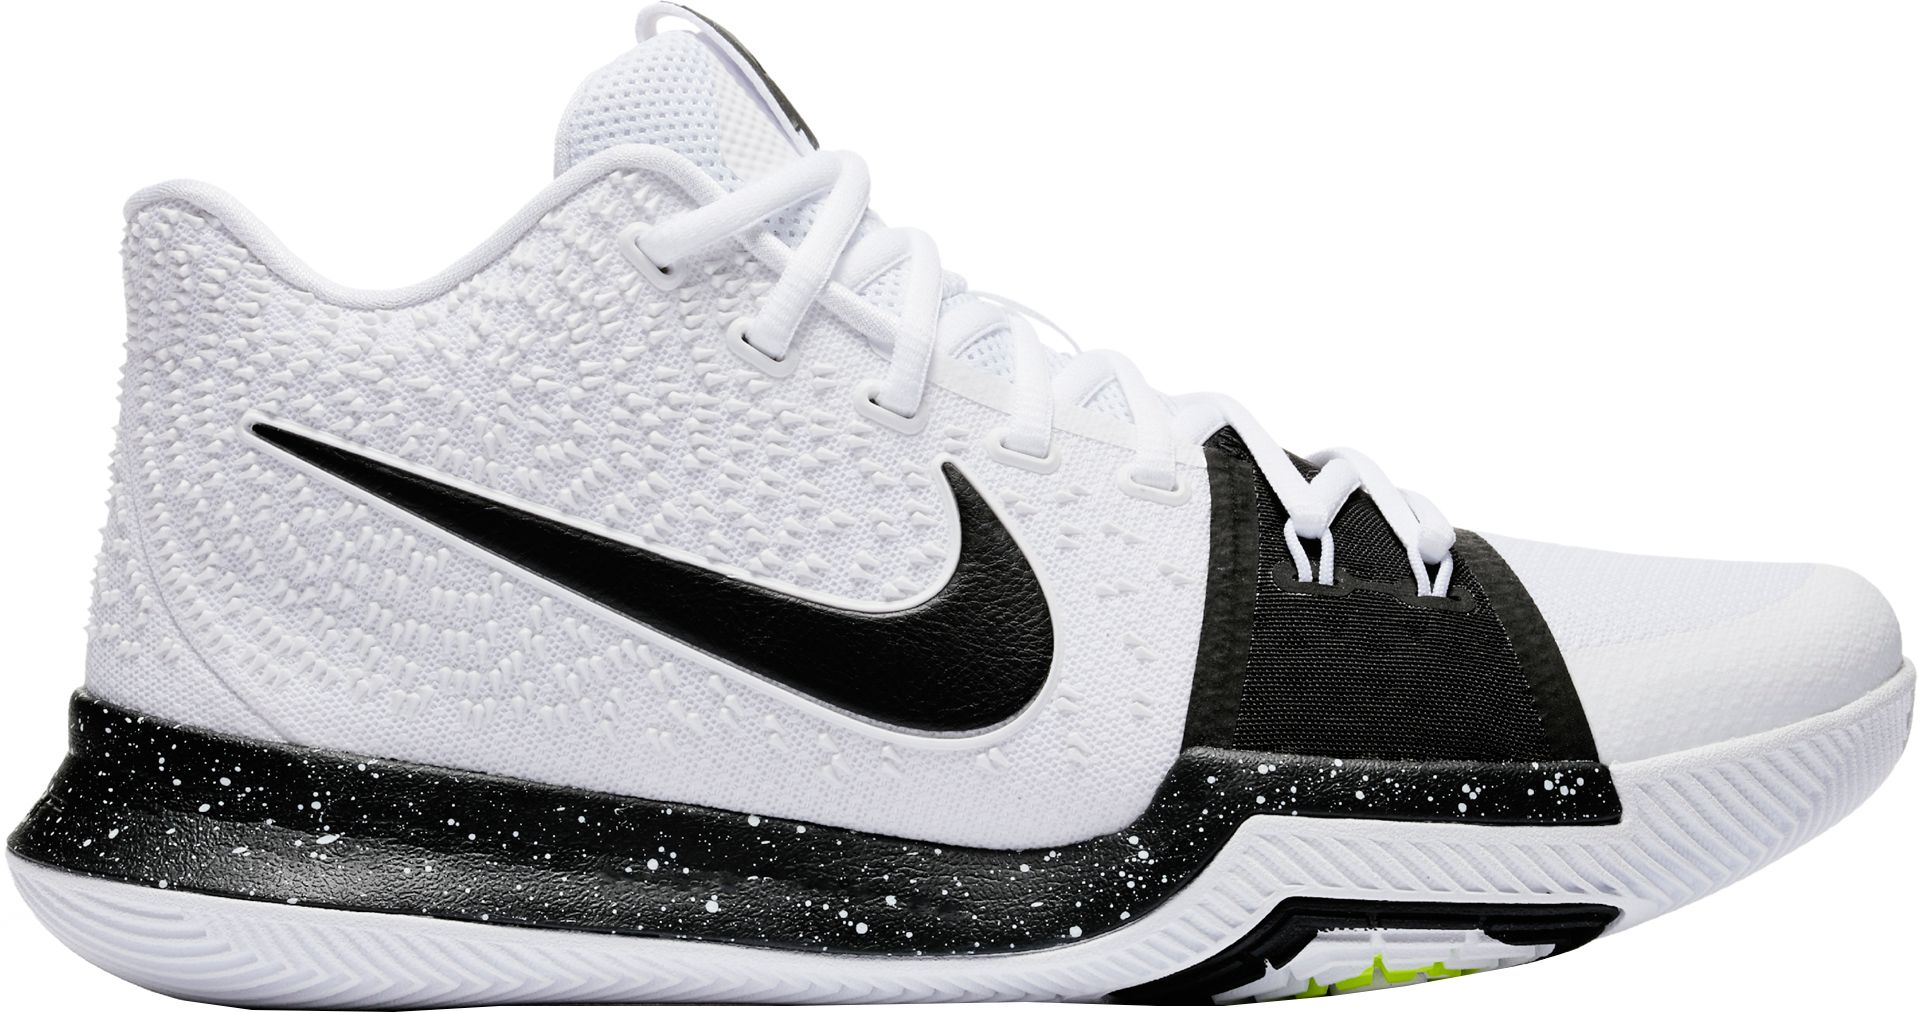 Product Image � Nike Men\u0027s Kyrie 3 TB Basketball Shoes. White/Black